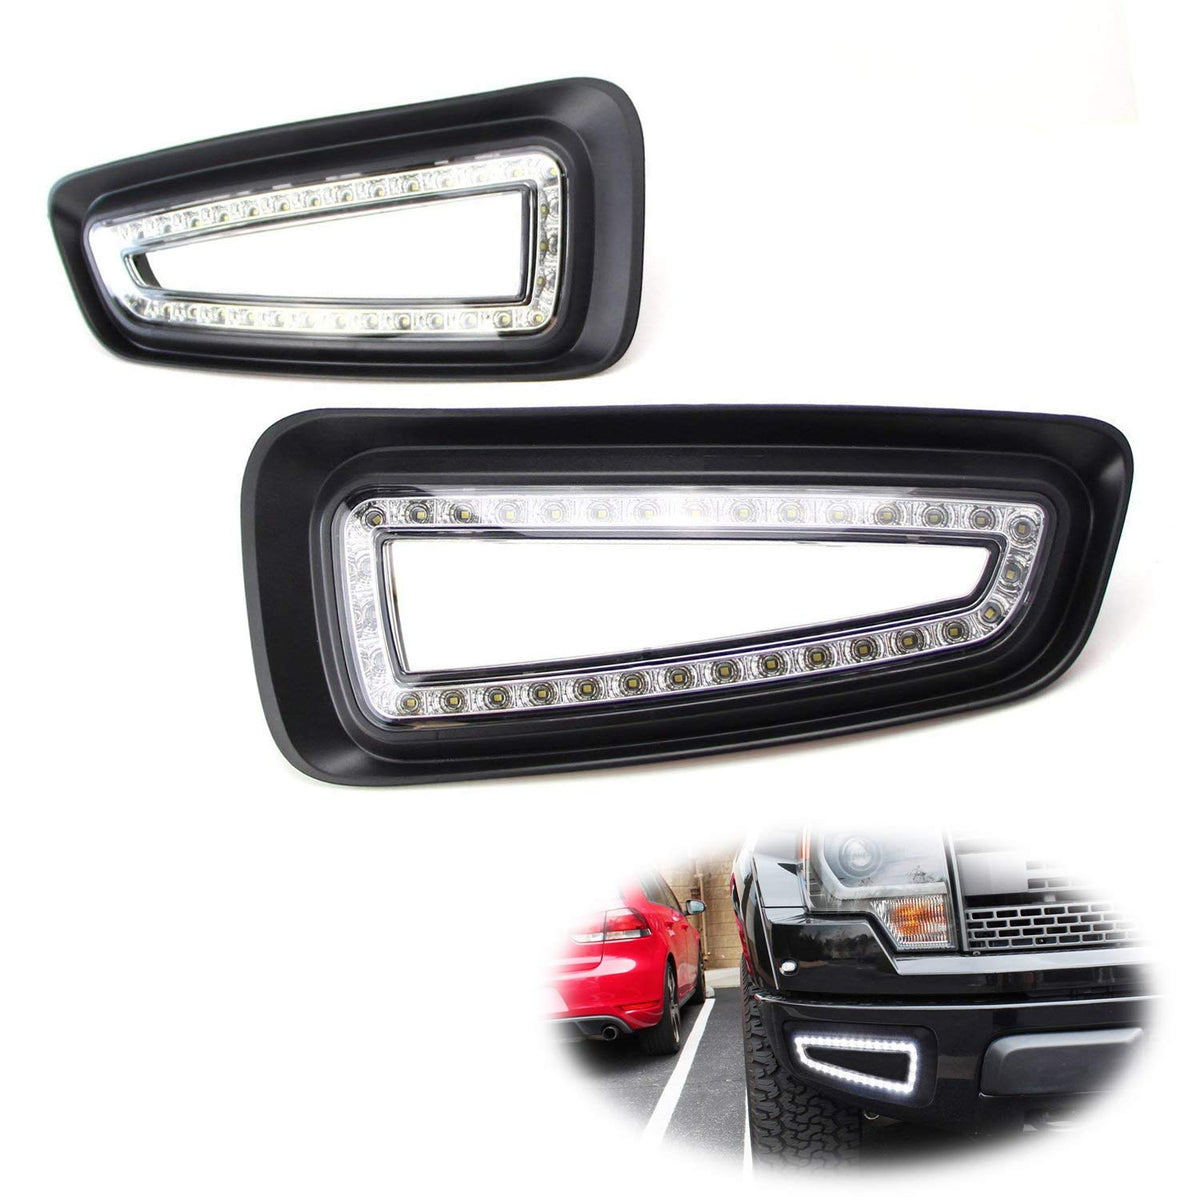 Lower Bumper White LED Daytime Running Lights For 10-14 Ford Raptor SVT,  Direct Fit on Bumper Opening, Powered by (66) 15W SMD LED Lights